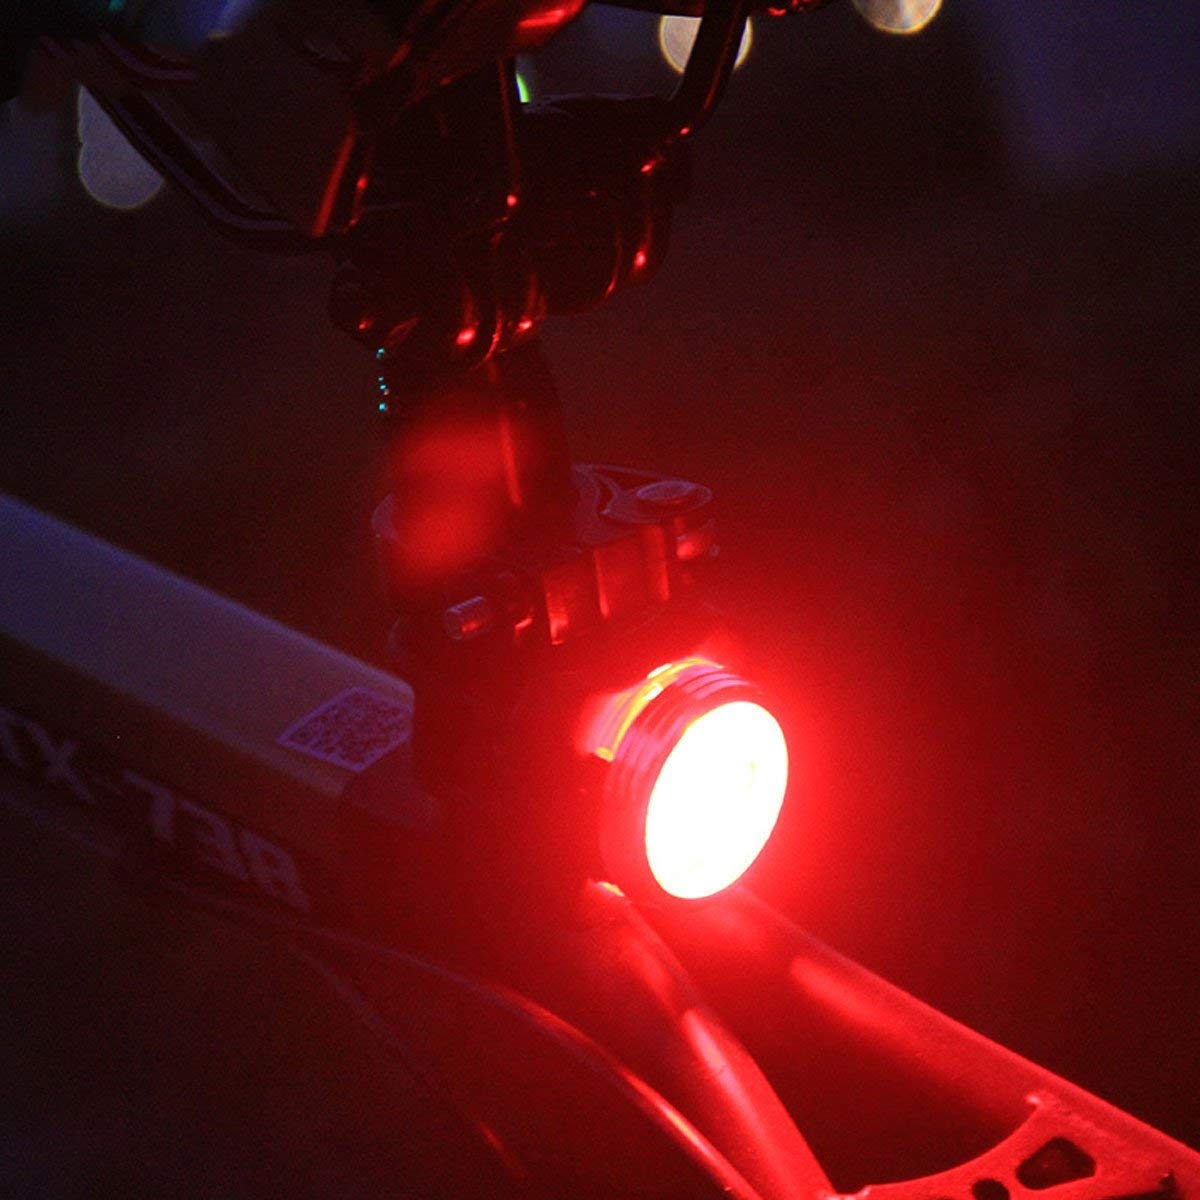 DUBUT21 Super Bright Bicycle Light Set USB Rechargeable Bike Headlight Free Tail Light Waterproof LED Bike Light Easy to Install Cycling Safety Commuter Flashlight Best Mountain Road City Bicycle by DUBUT21 (Image #7)